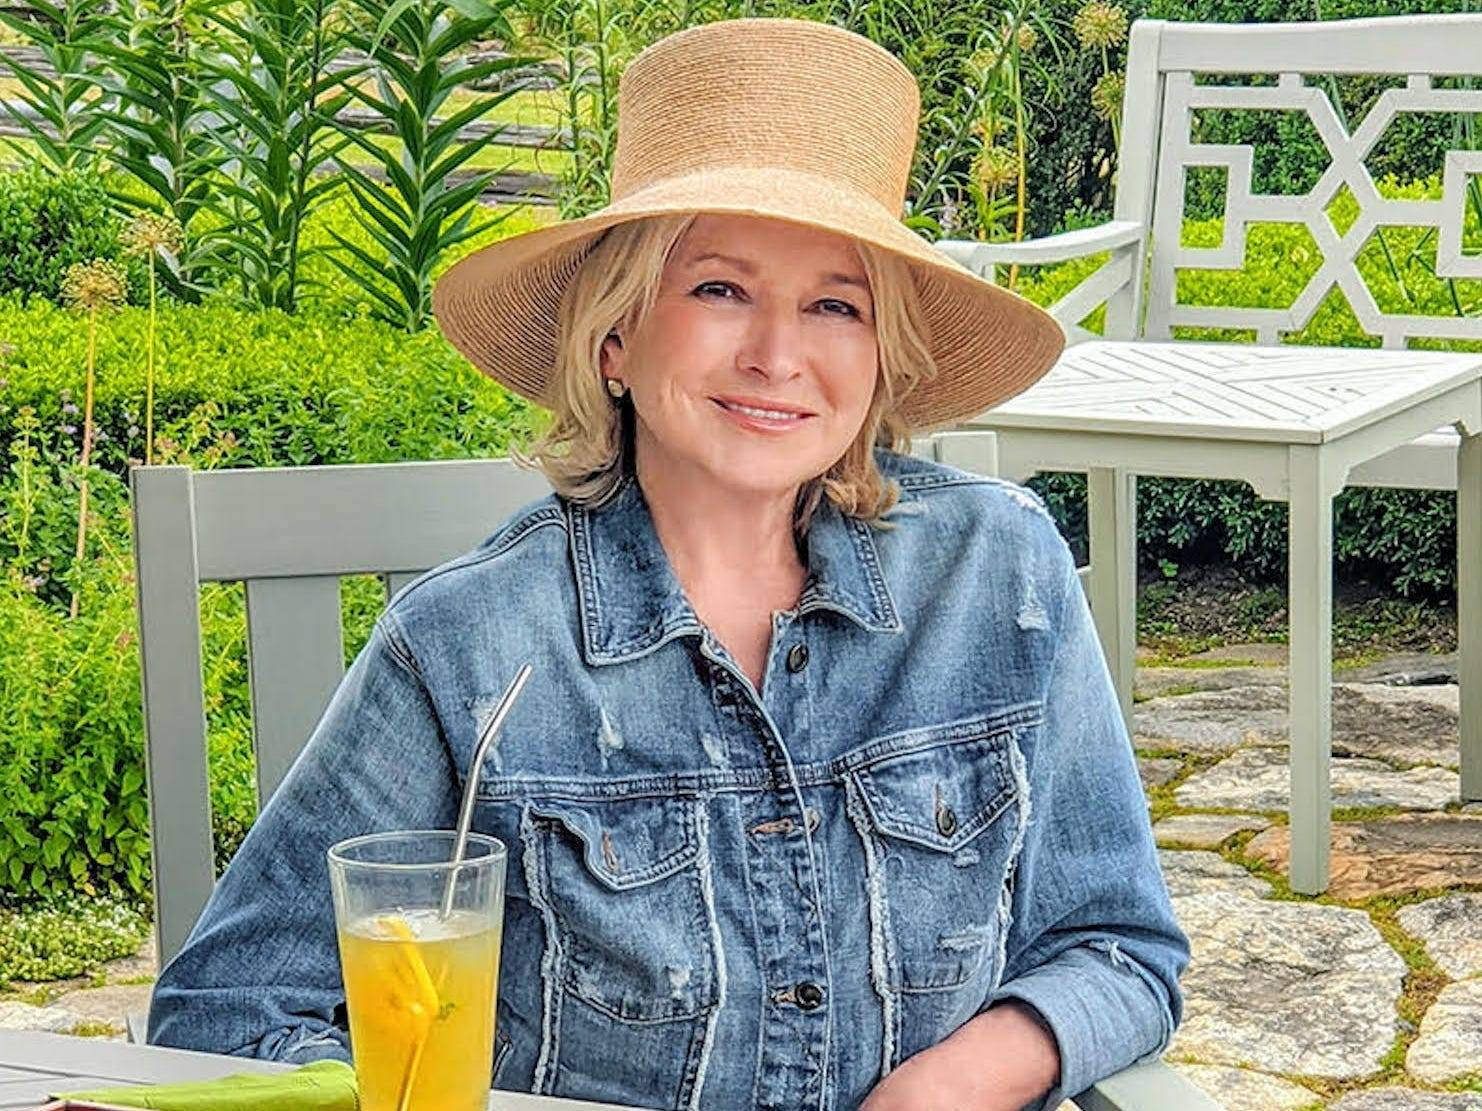 forget kylie jenner martha stewart became a billionaire in a single day jpg?imgsize=369776.